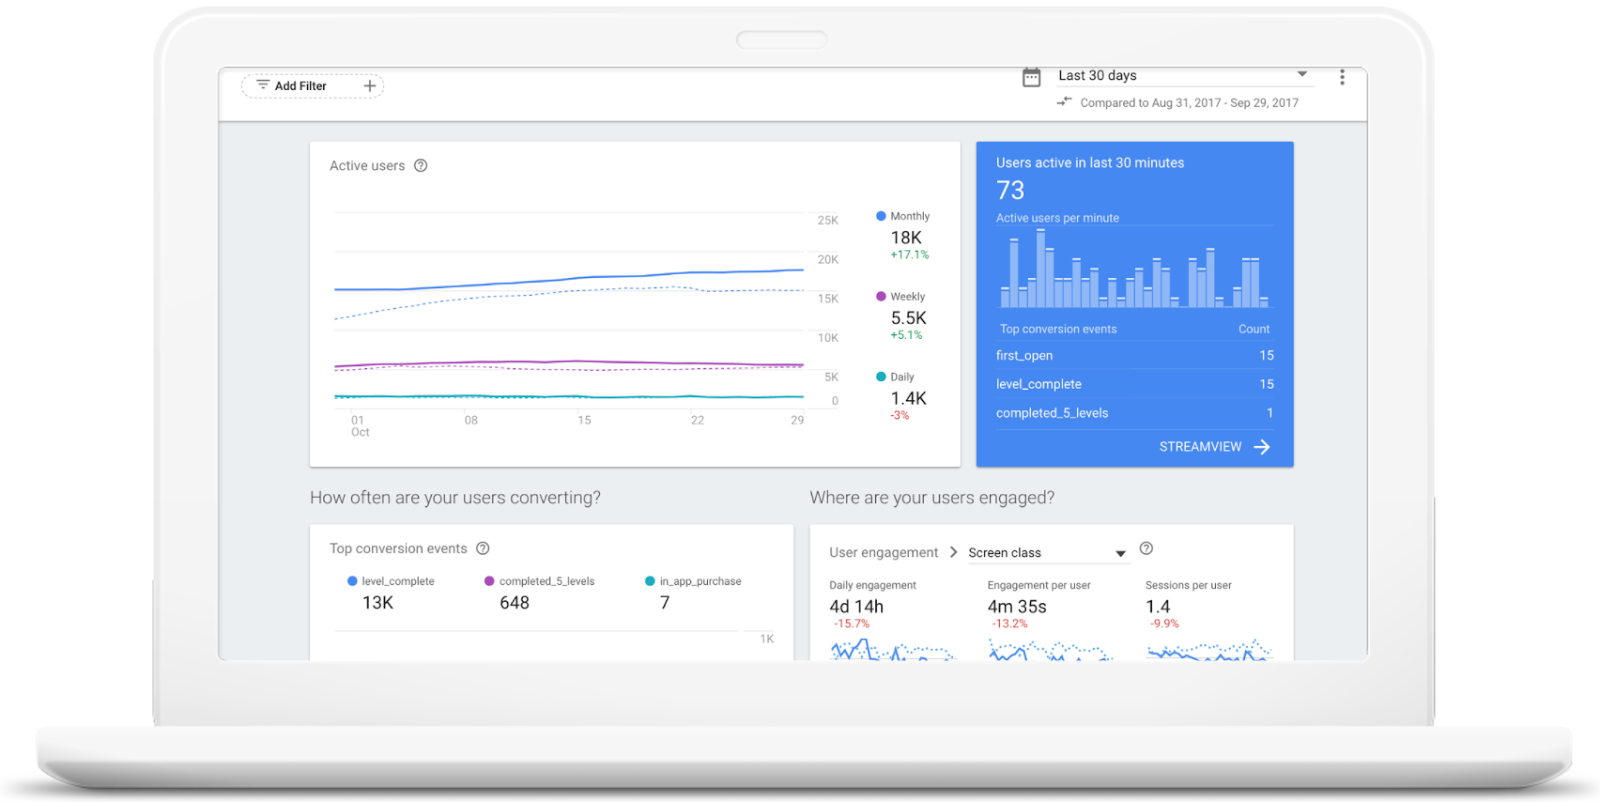 VioPro Marketing Vancouver image2 Google Analytics for Firebase: New Look and New Features